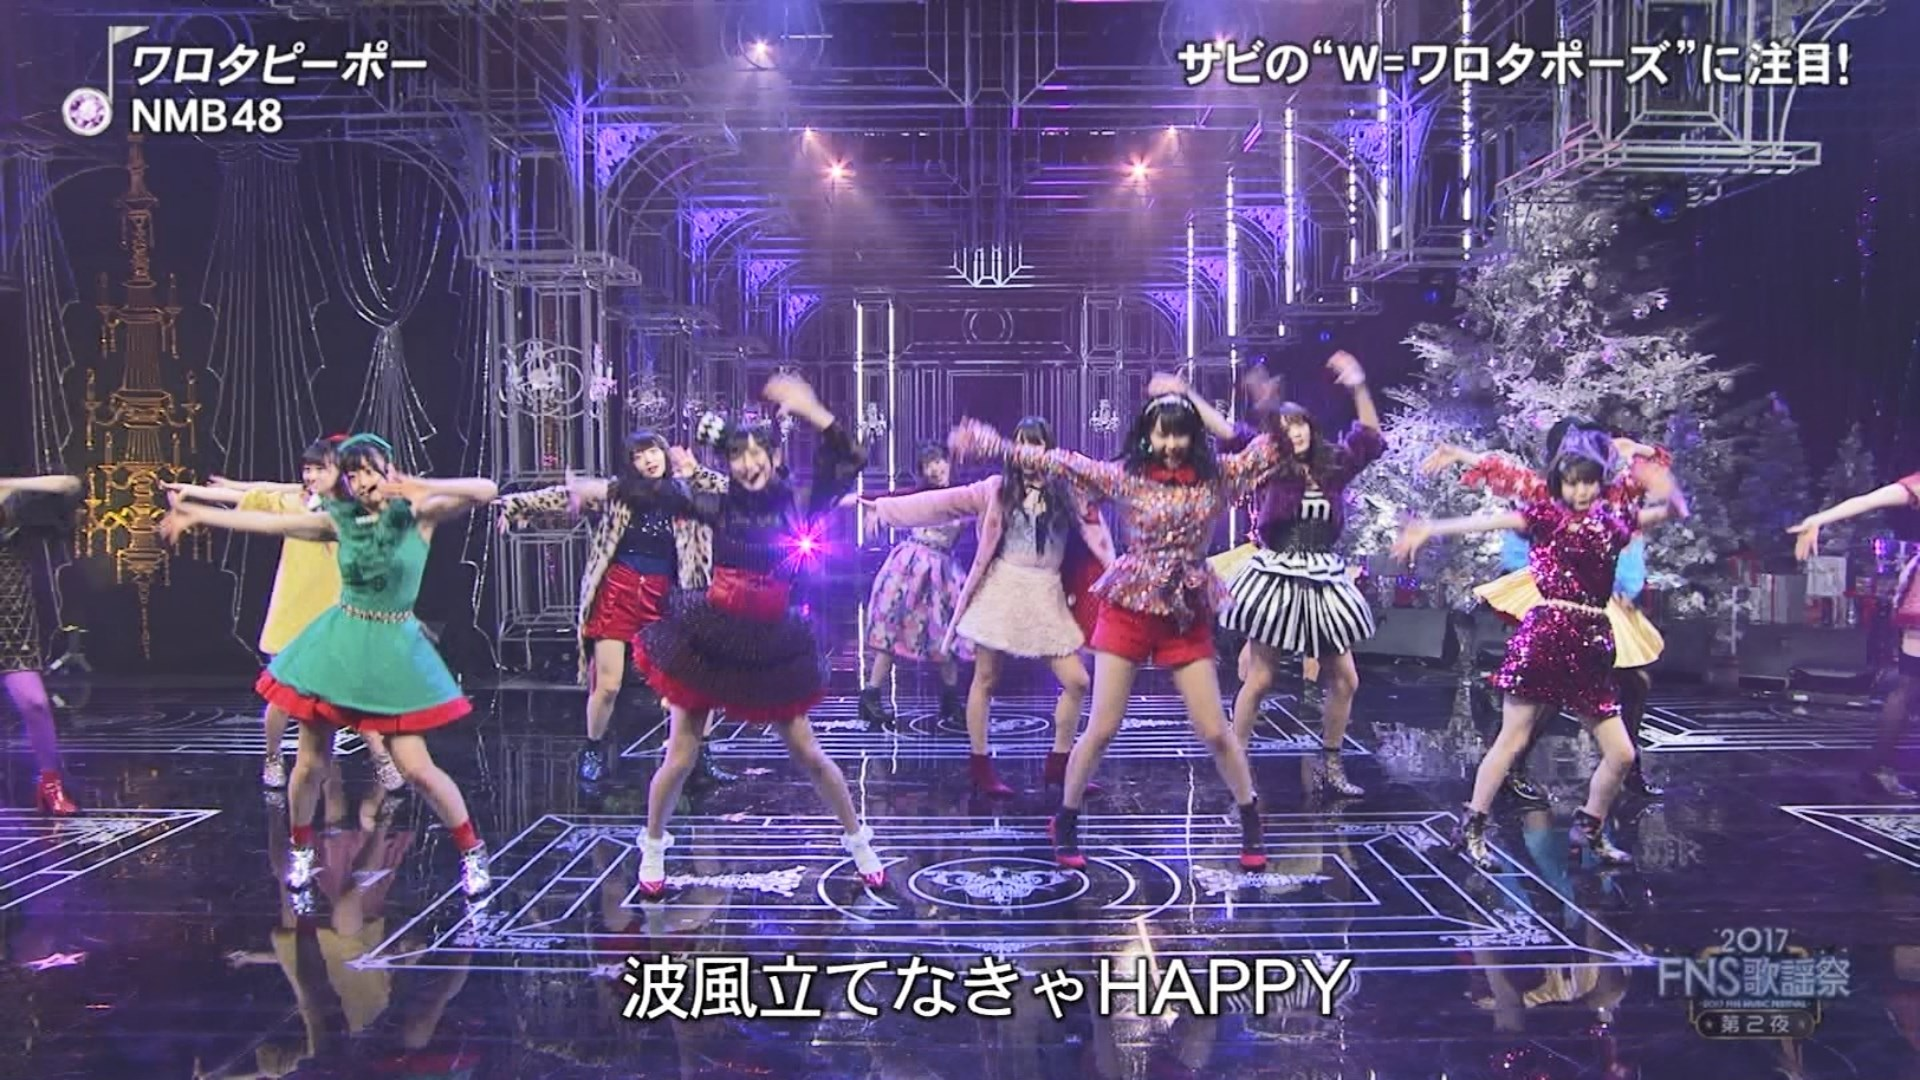 2017FNS歌謡祭第2夜・NMB48ワロタピーポーキャプ-050